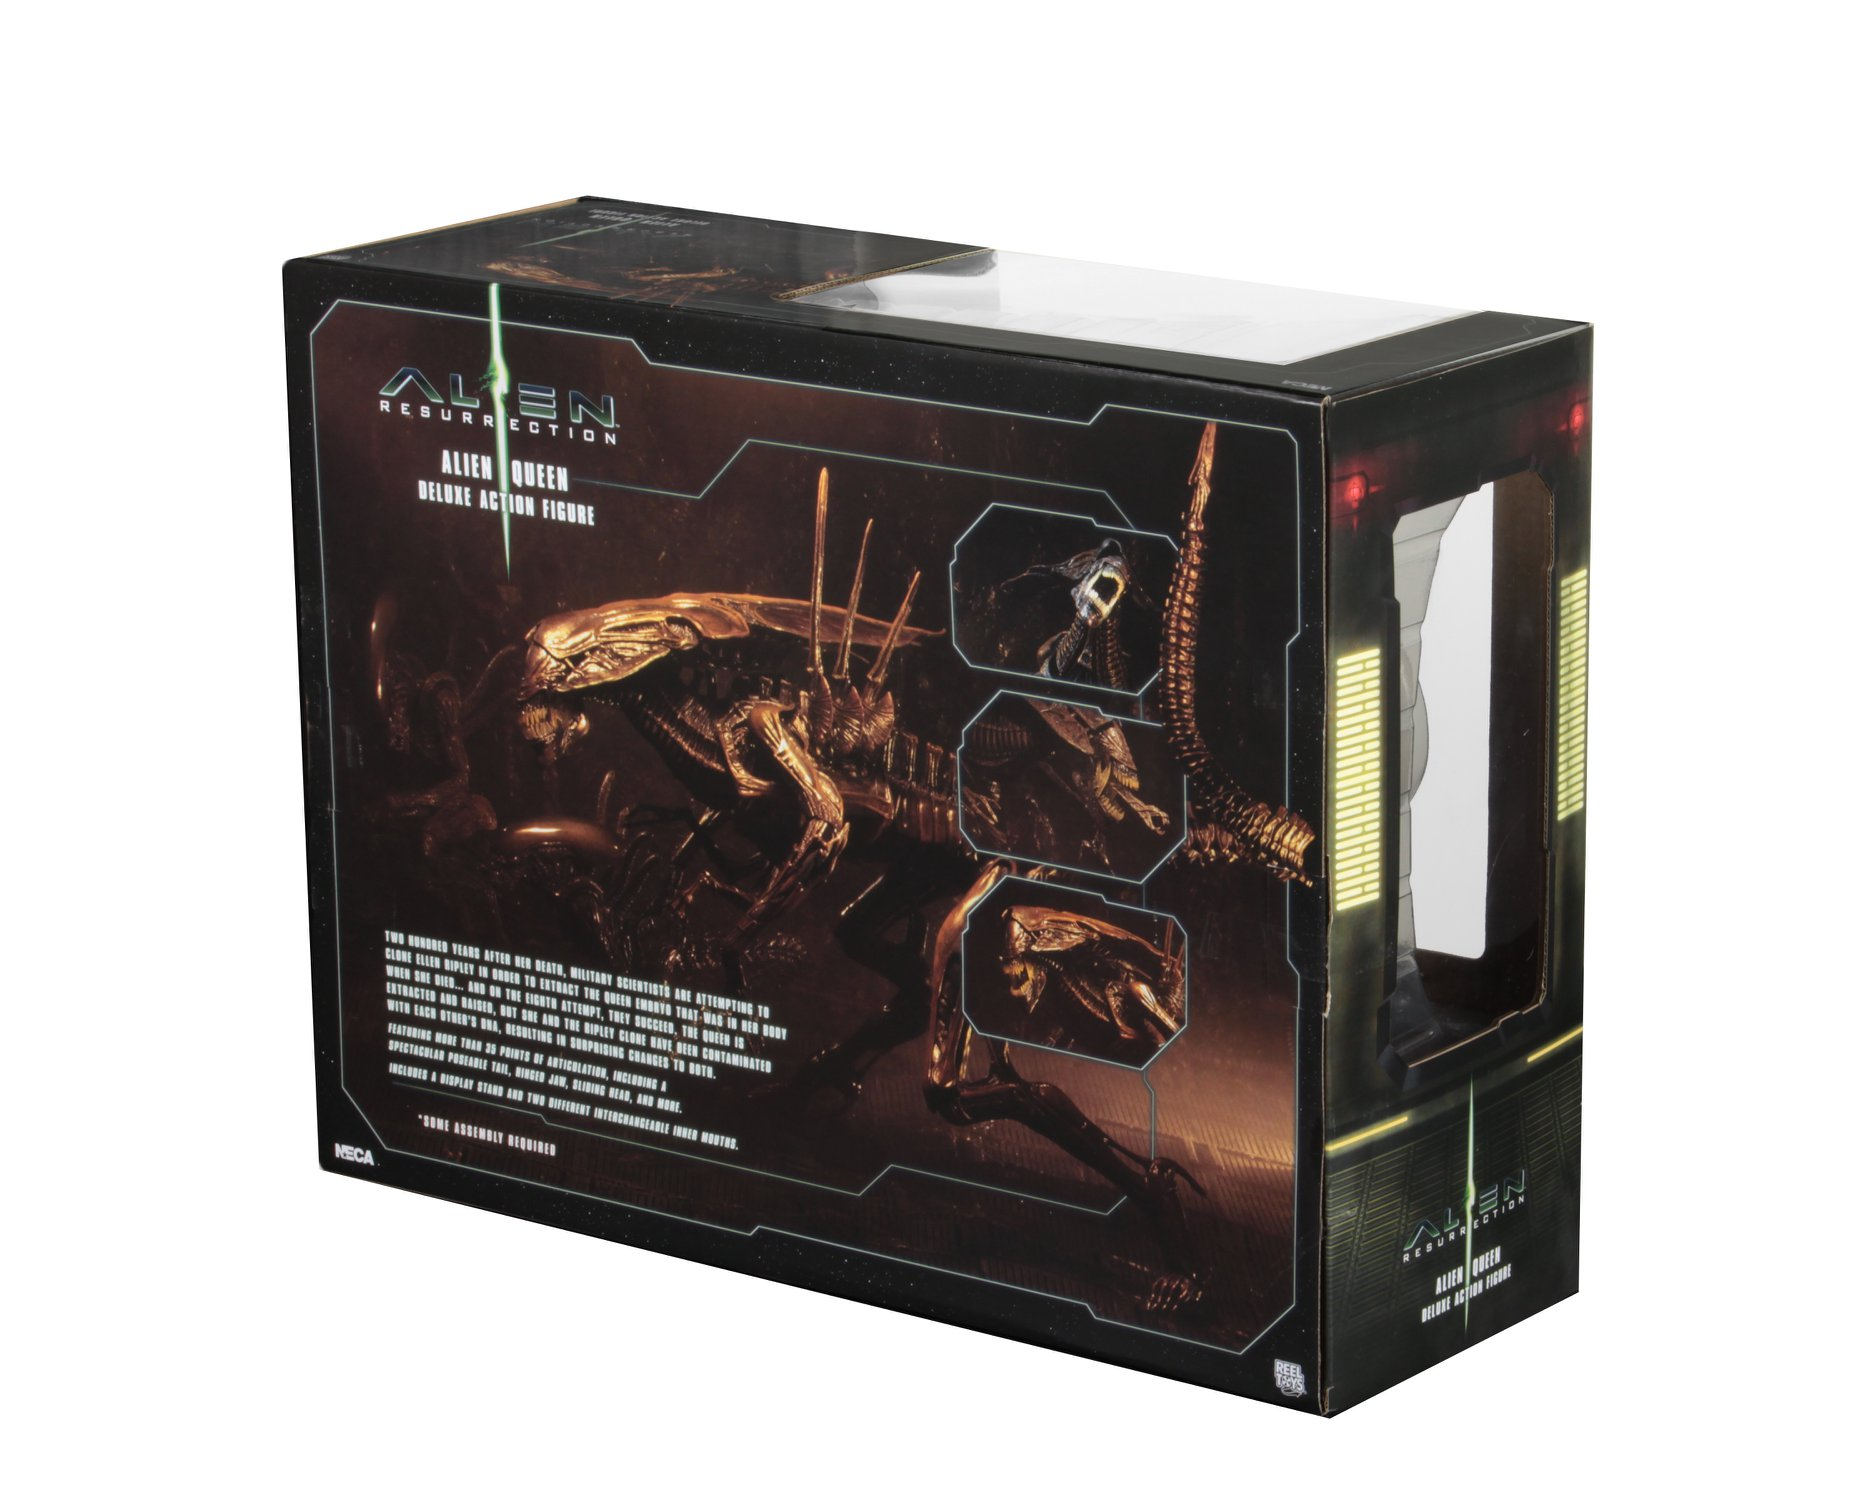 NECA Alien Resurrection Queen Packaging 003